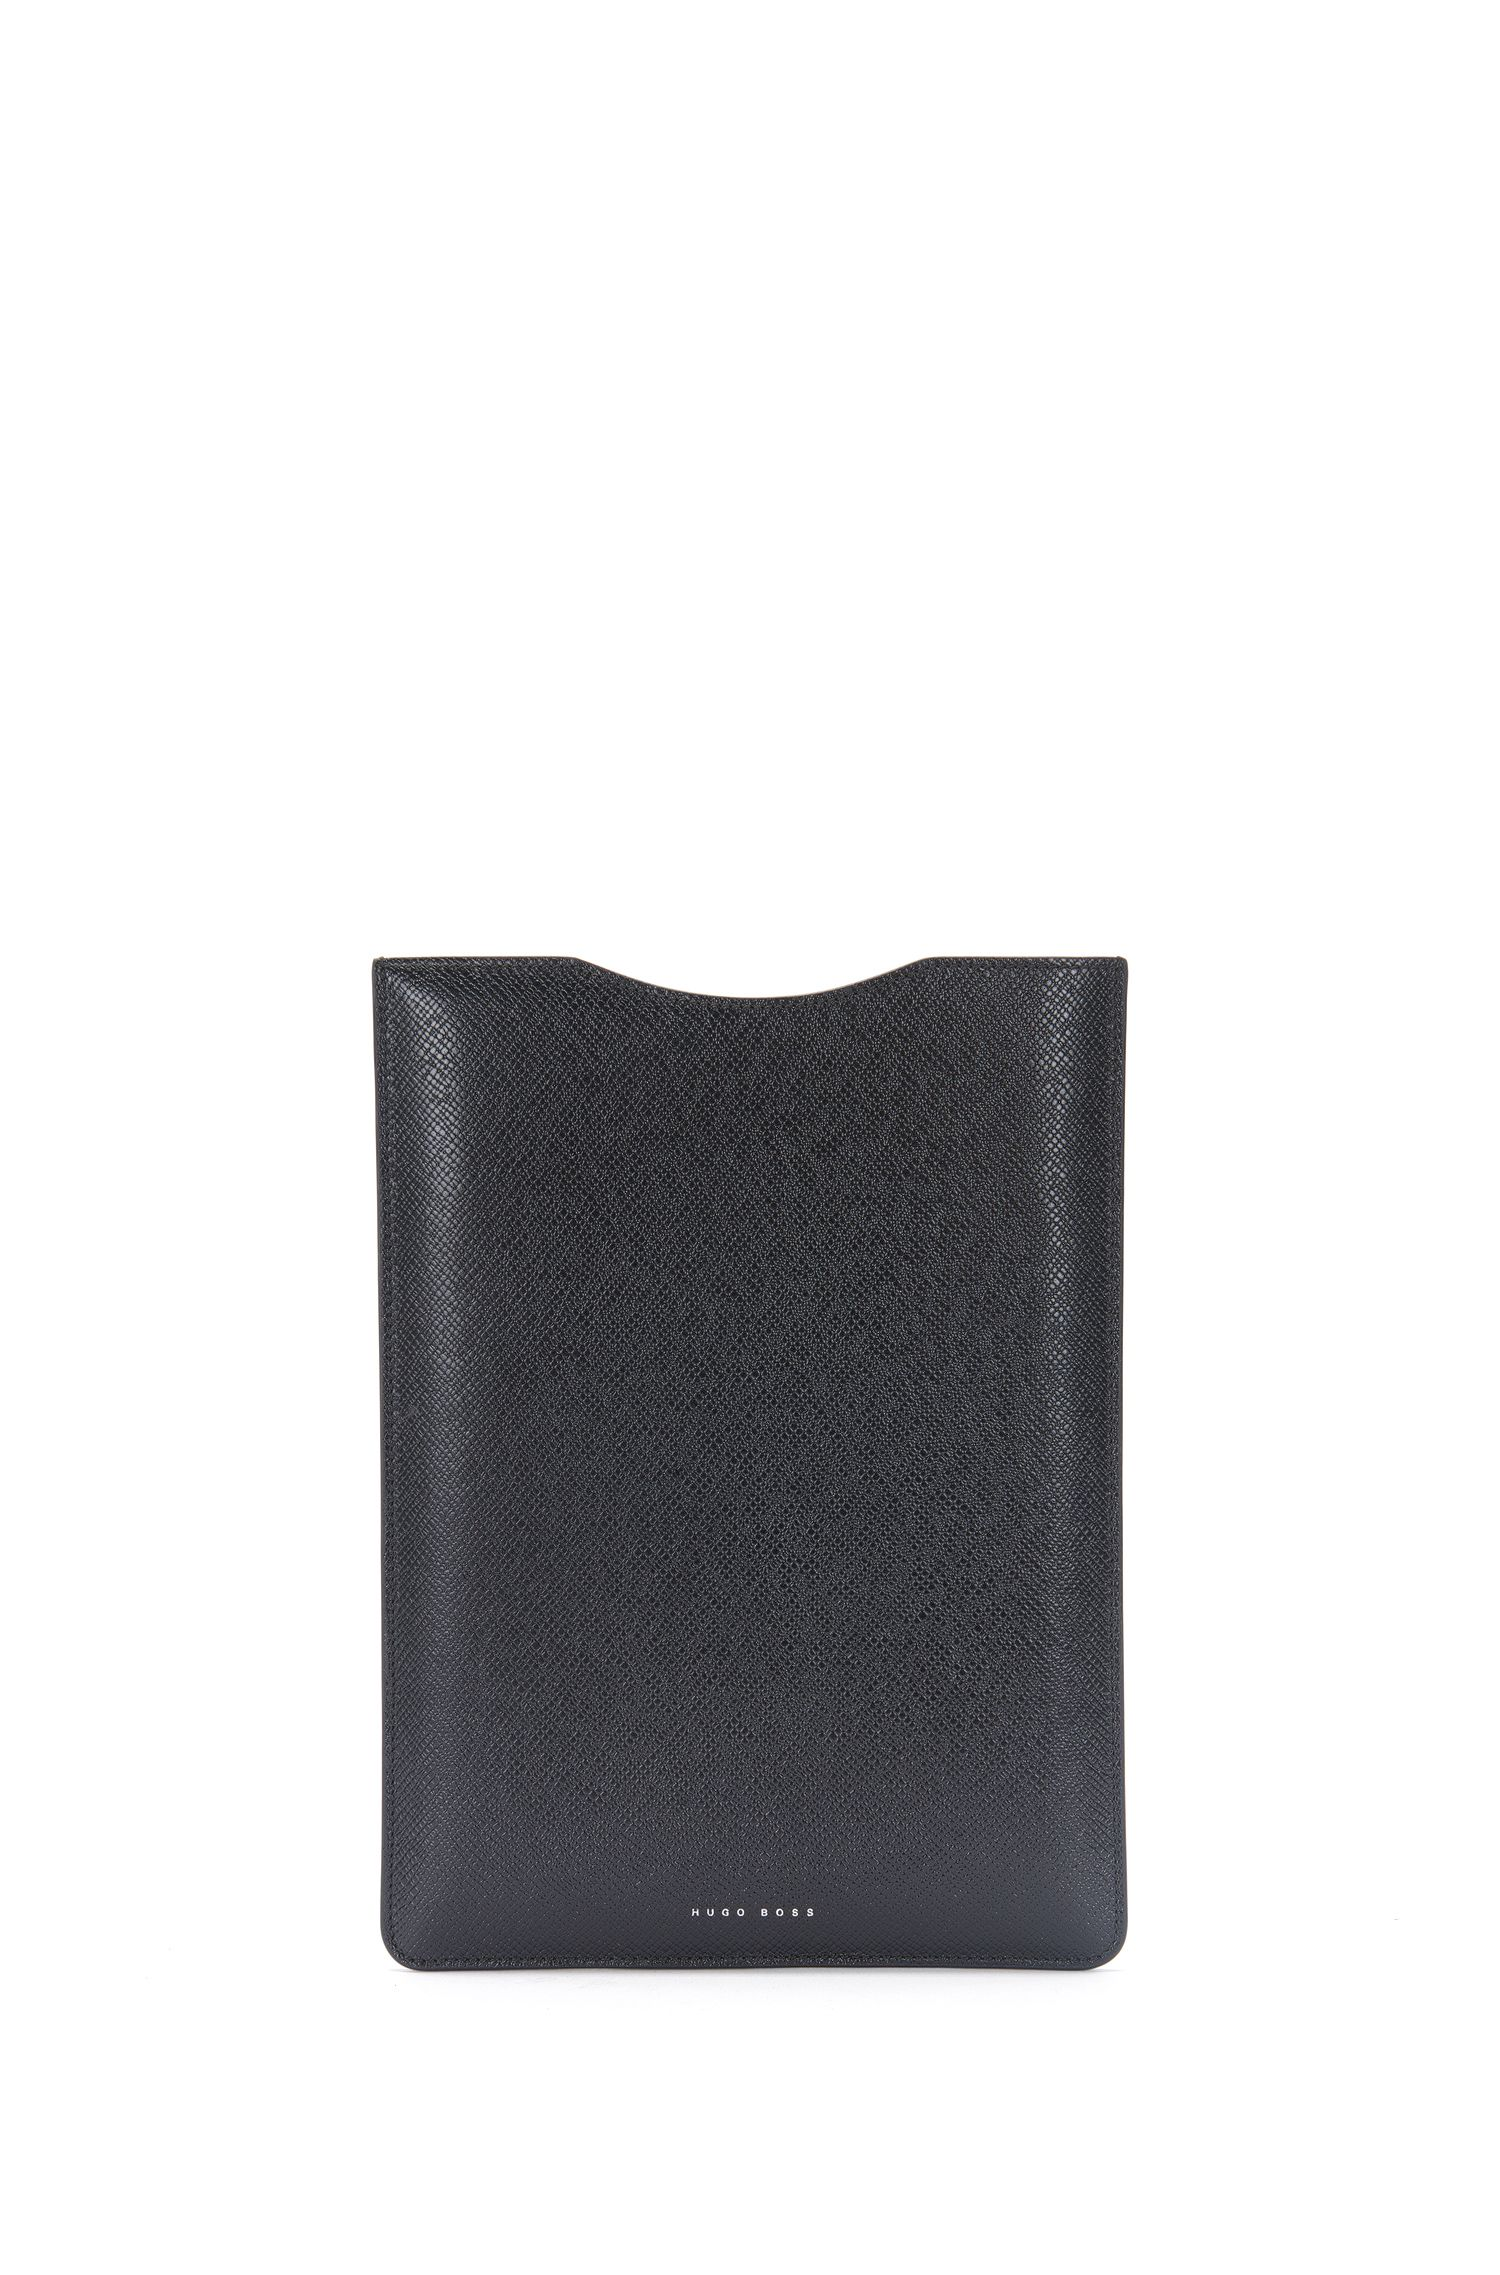 'Signature Tablet' | Leather Embossed Tablet Sleeve